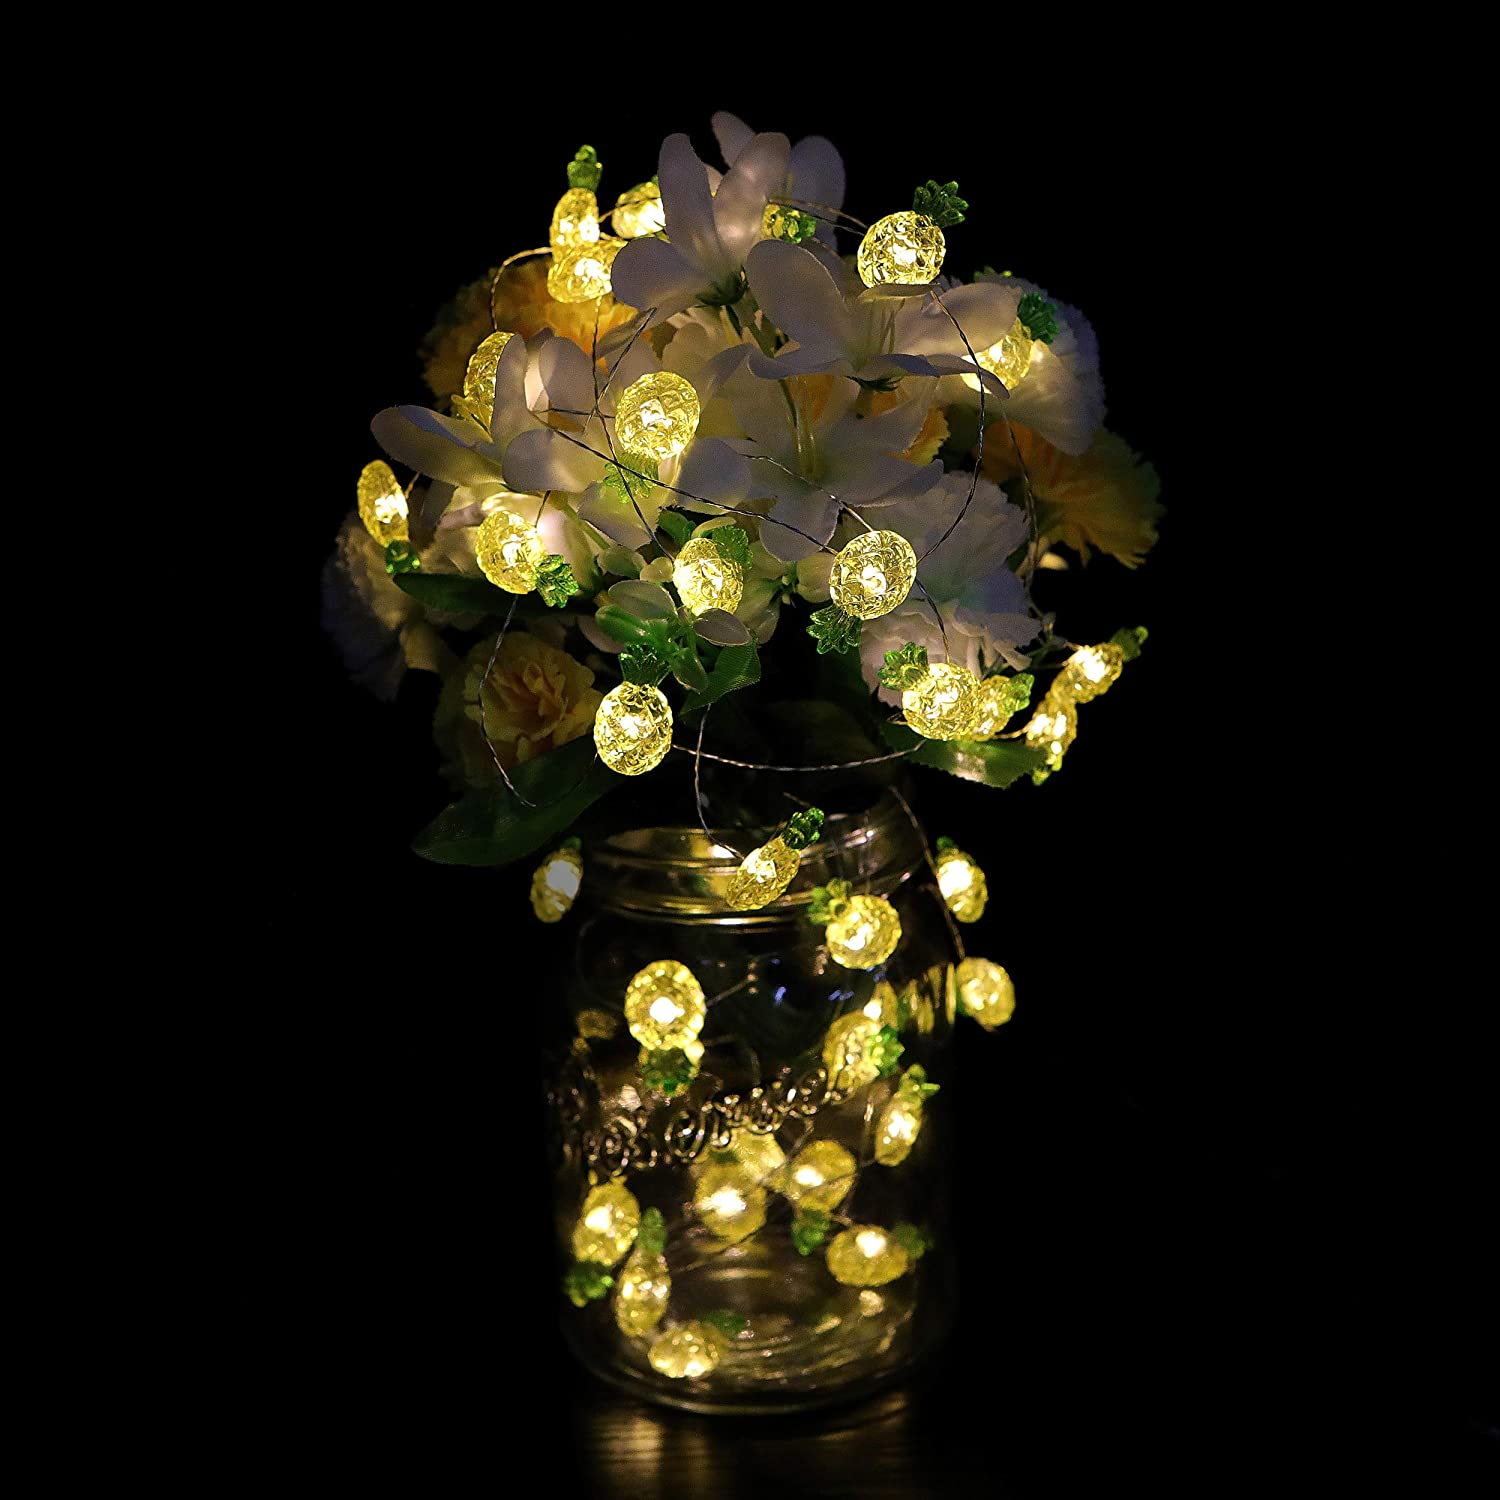 Living Room DIY Wreathe Ornamental Lightingift Pineapple String Lights Patio Birthday Party Remote, Warm White 13.5 Ft 40 LED Tropical Theme Lights Battery Operated Fairy Lights for Wedding